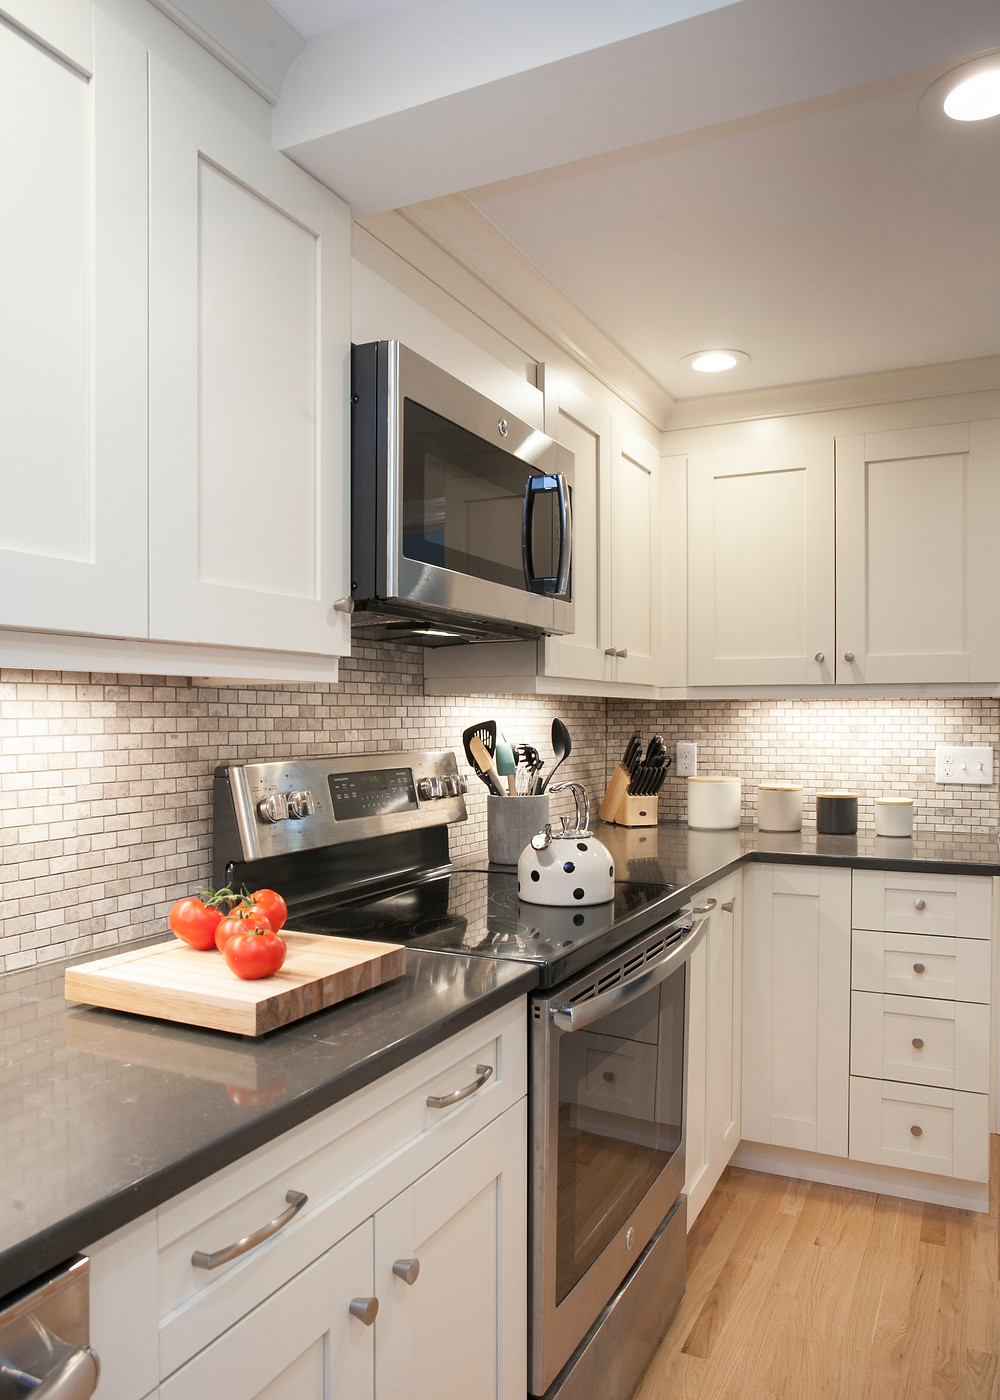 White kitchen with black countertops and stainless steel appliances